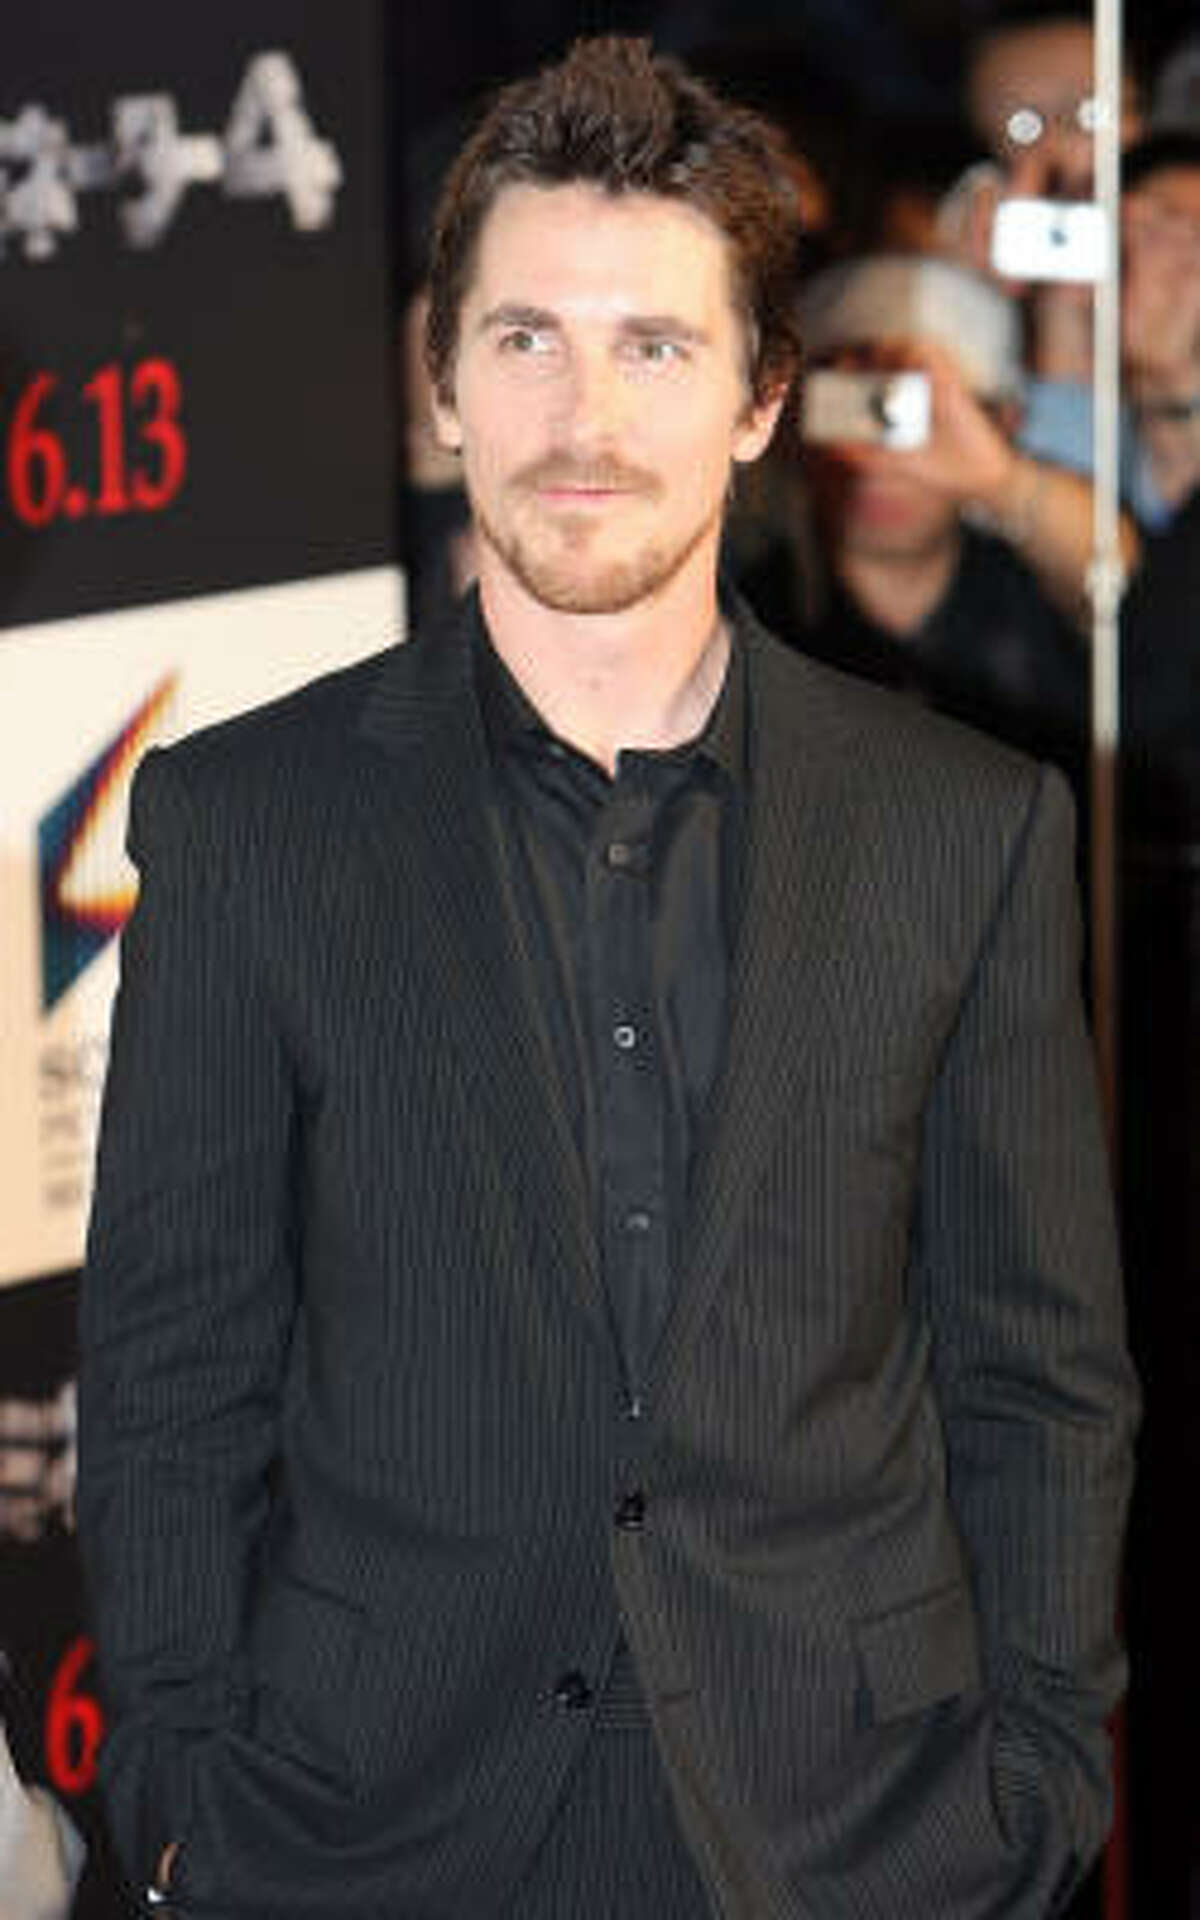 Christian Bale is no stranger to outbursts. The actor has been accused of allegedly hitting his mom and sister and freaking out on the set of Terminator Salvation when someone accidentally walked on set.